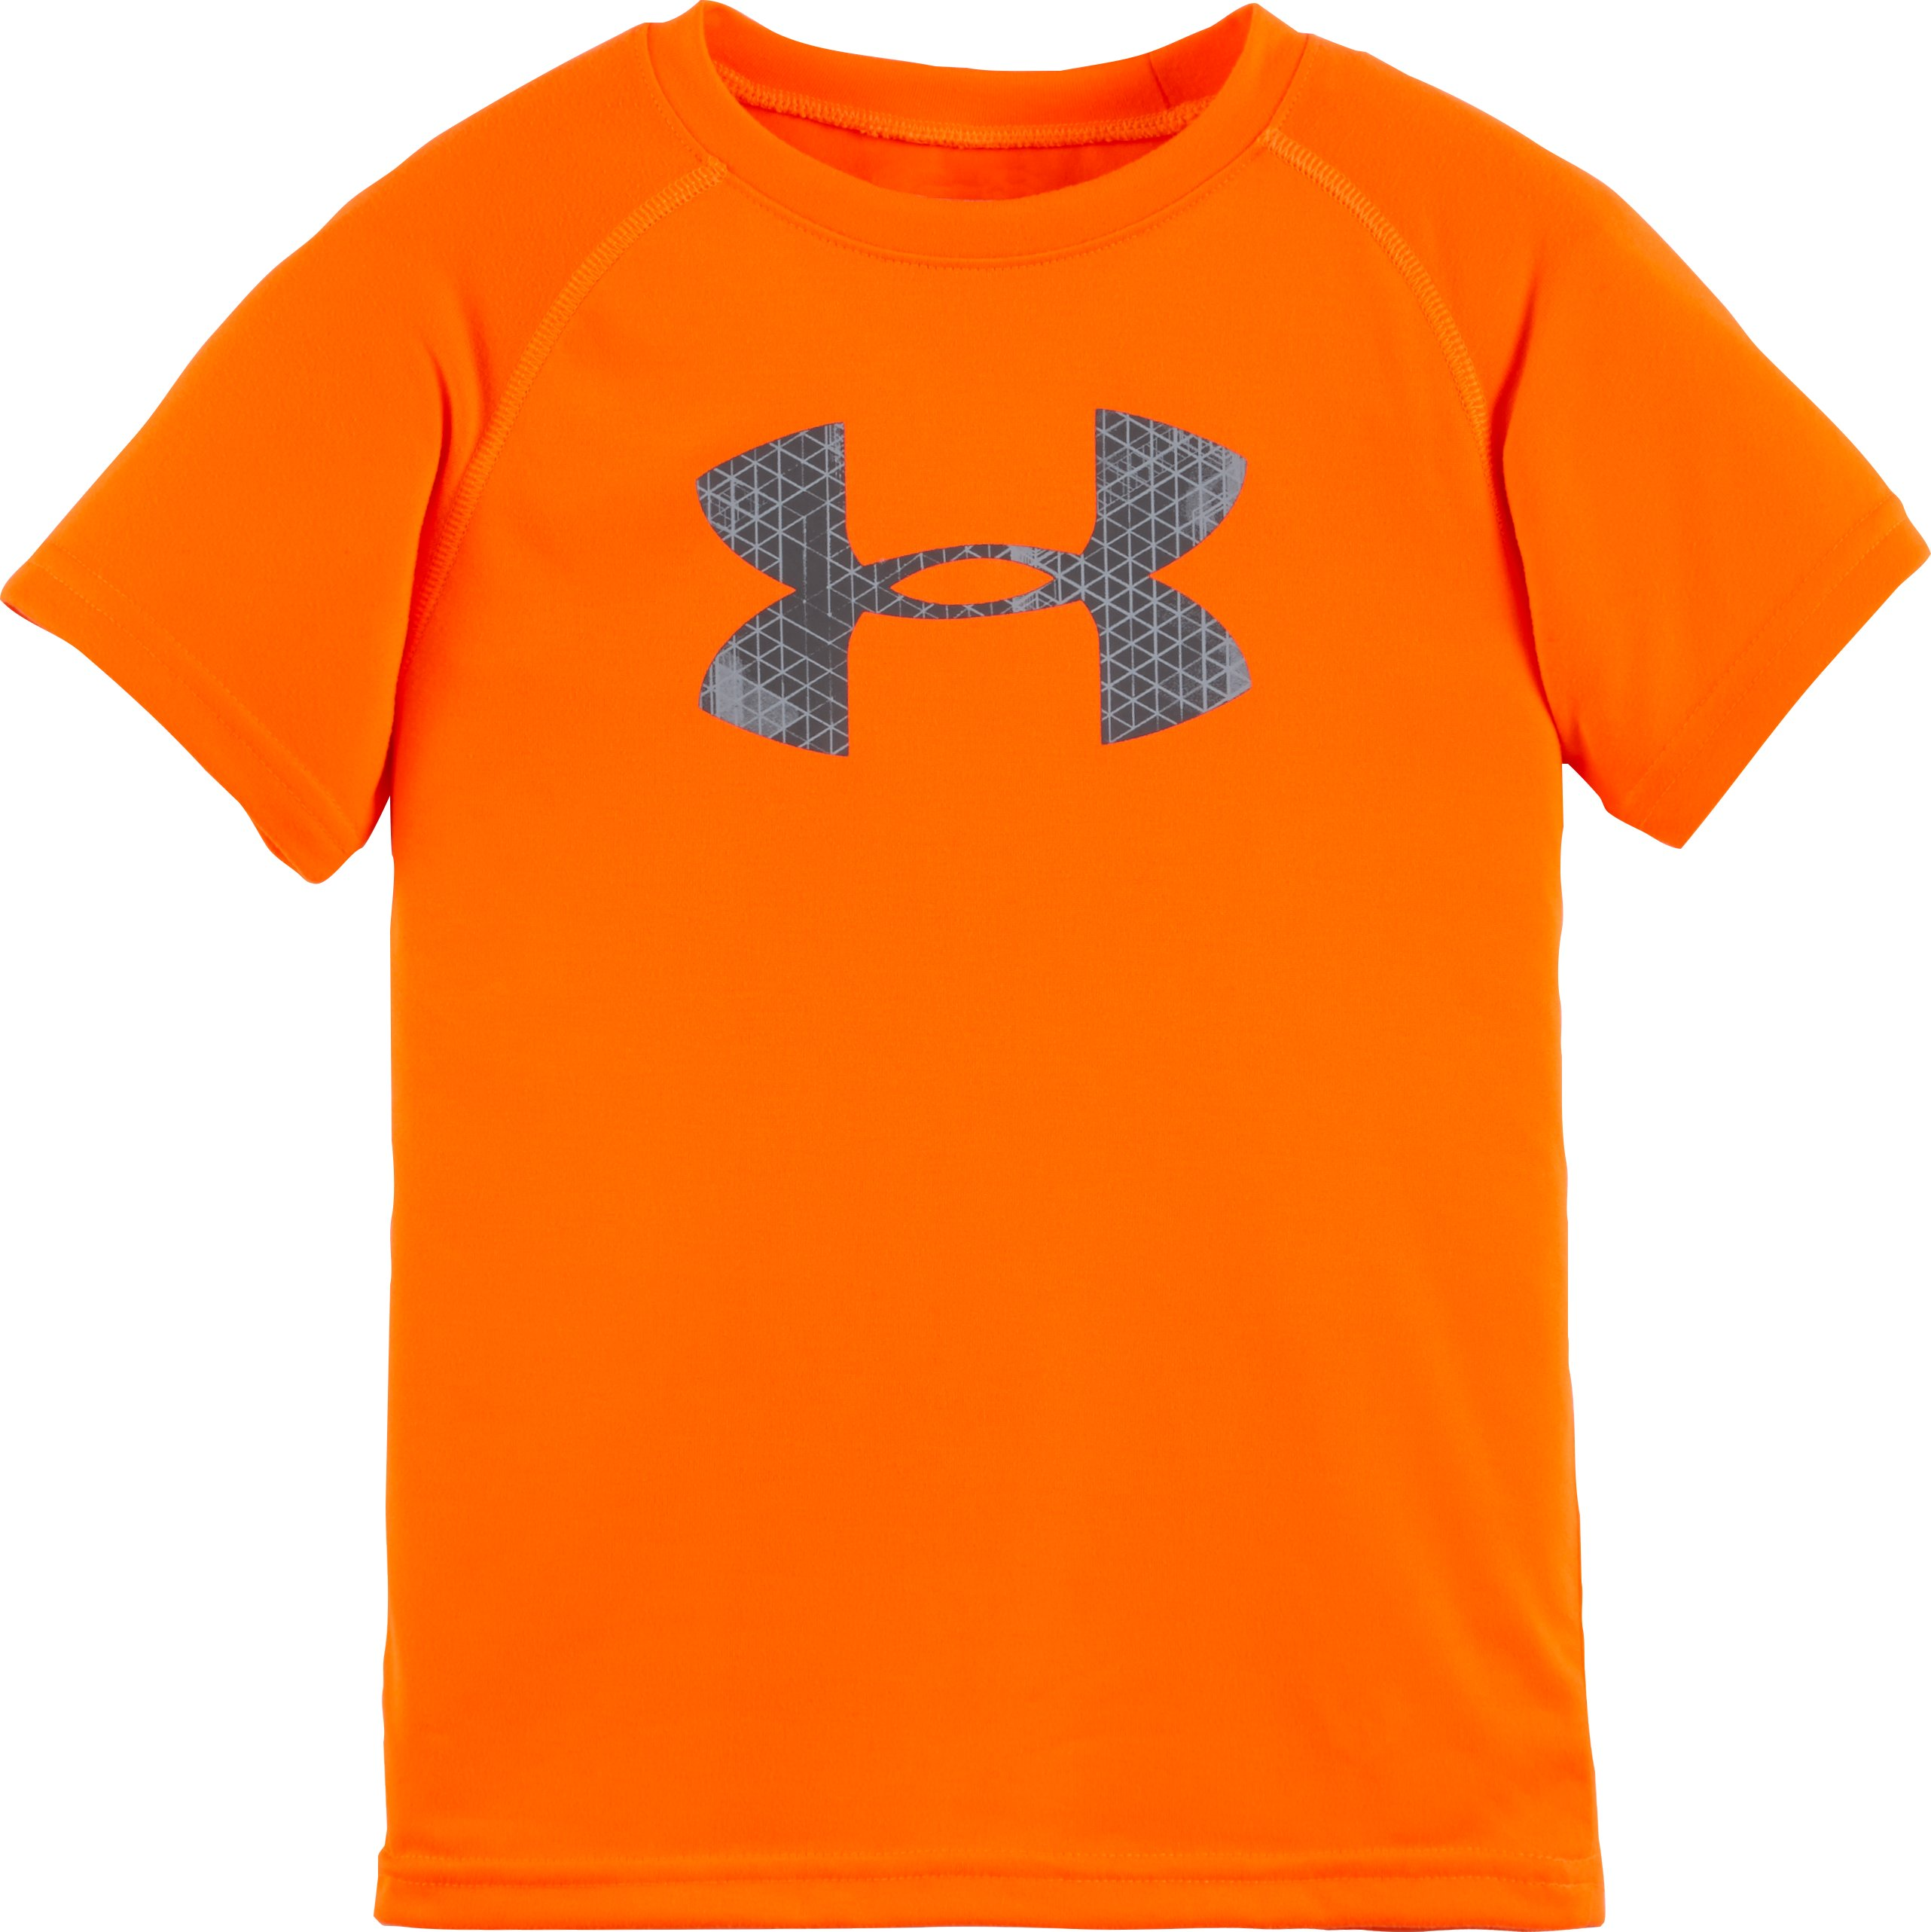 Boys' Toddler UA Hexascope Big Logo Short Sleeve T-Shirt, Blaze Orange